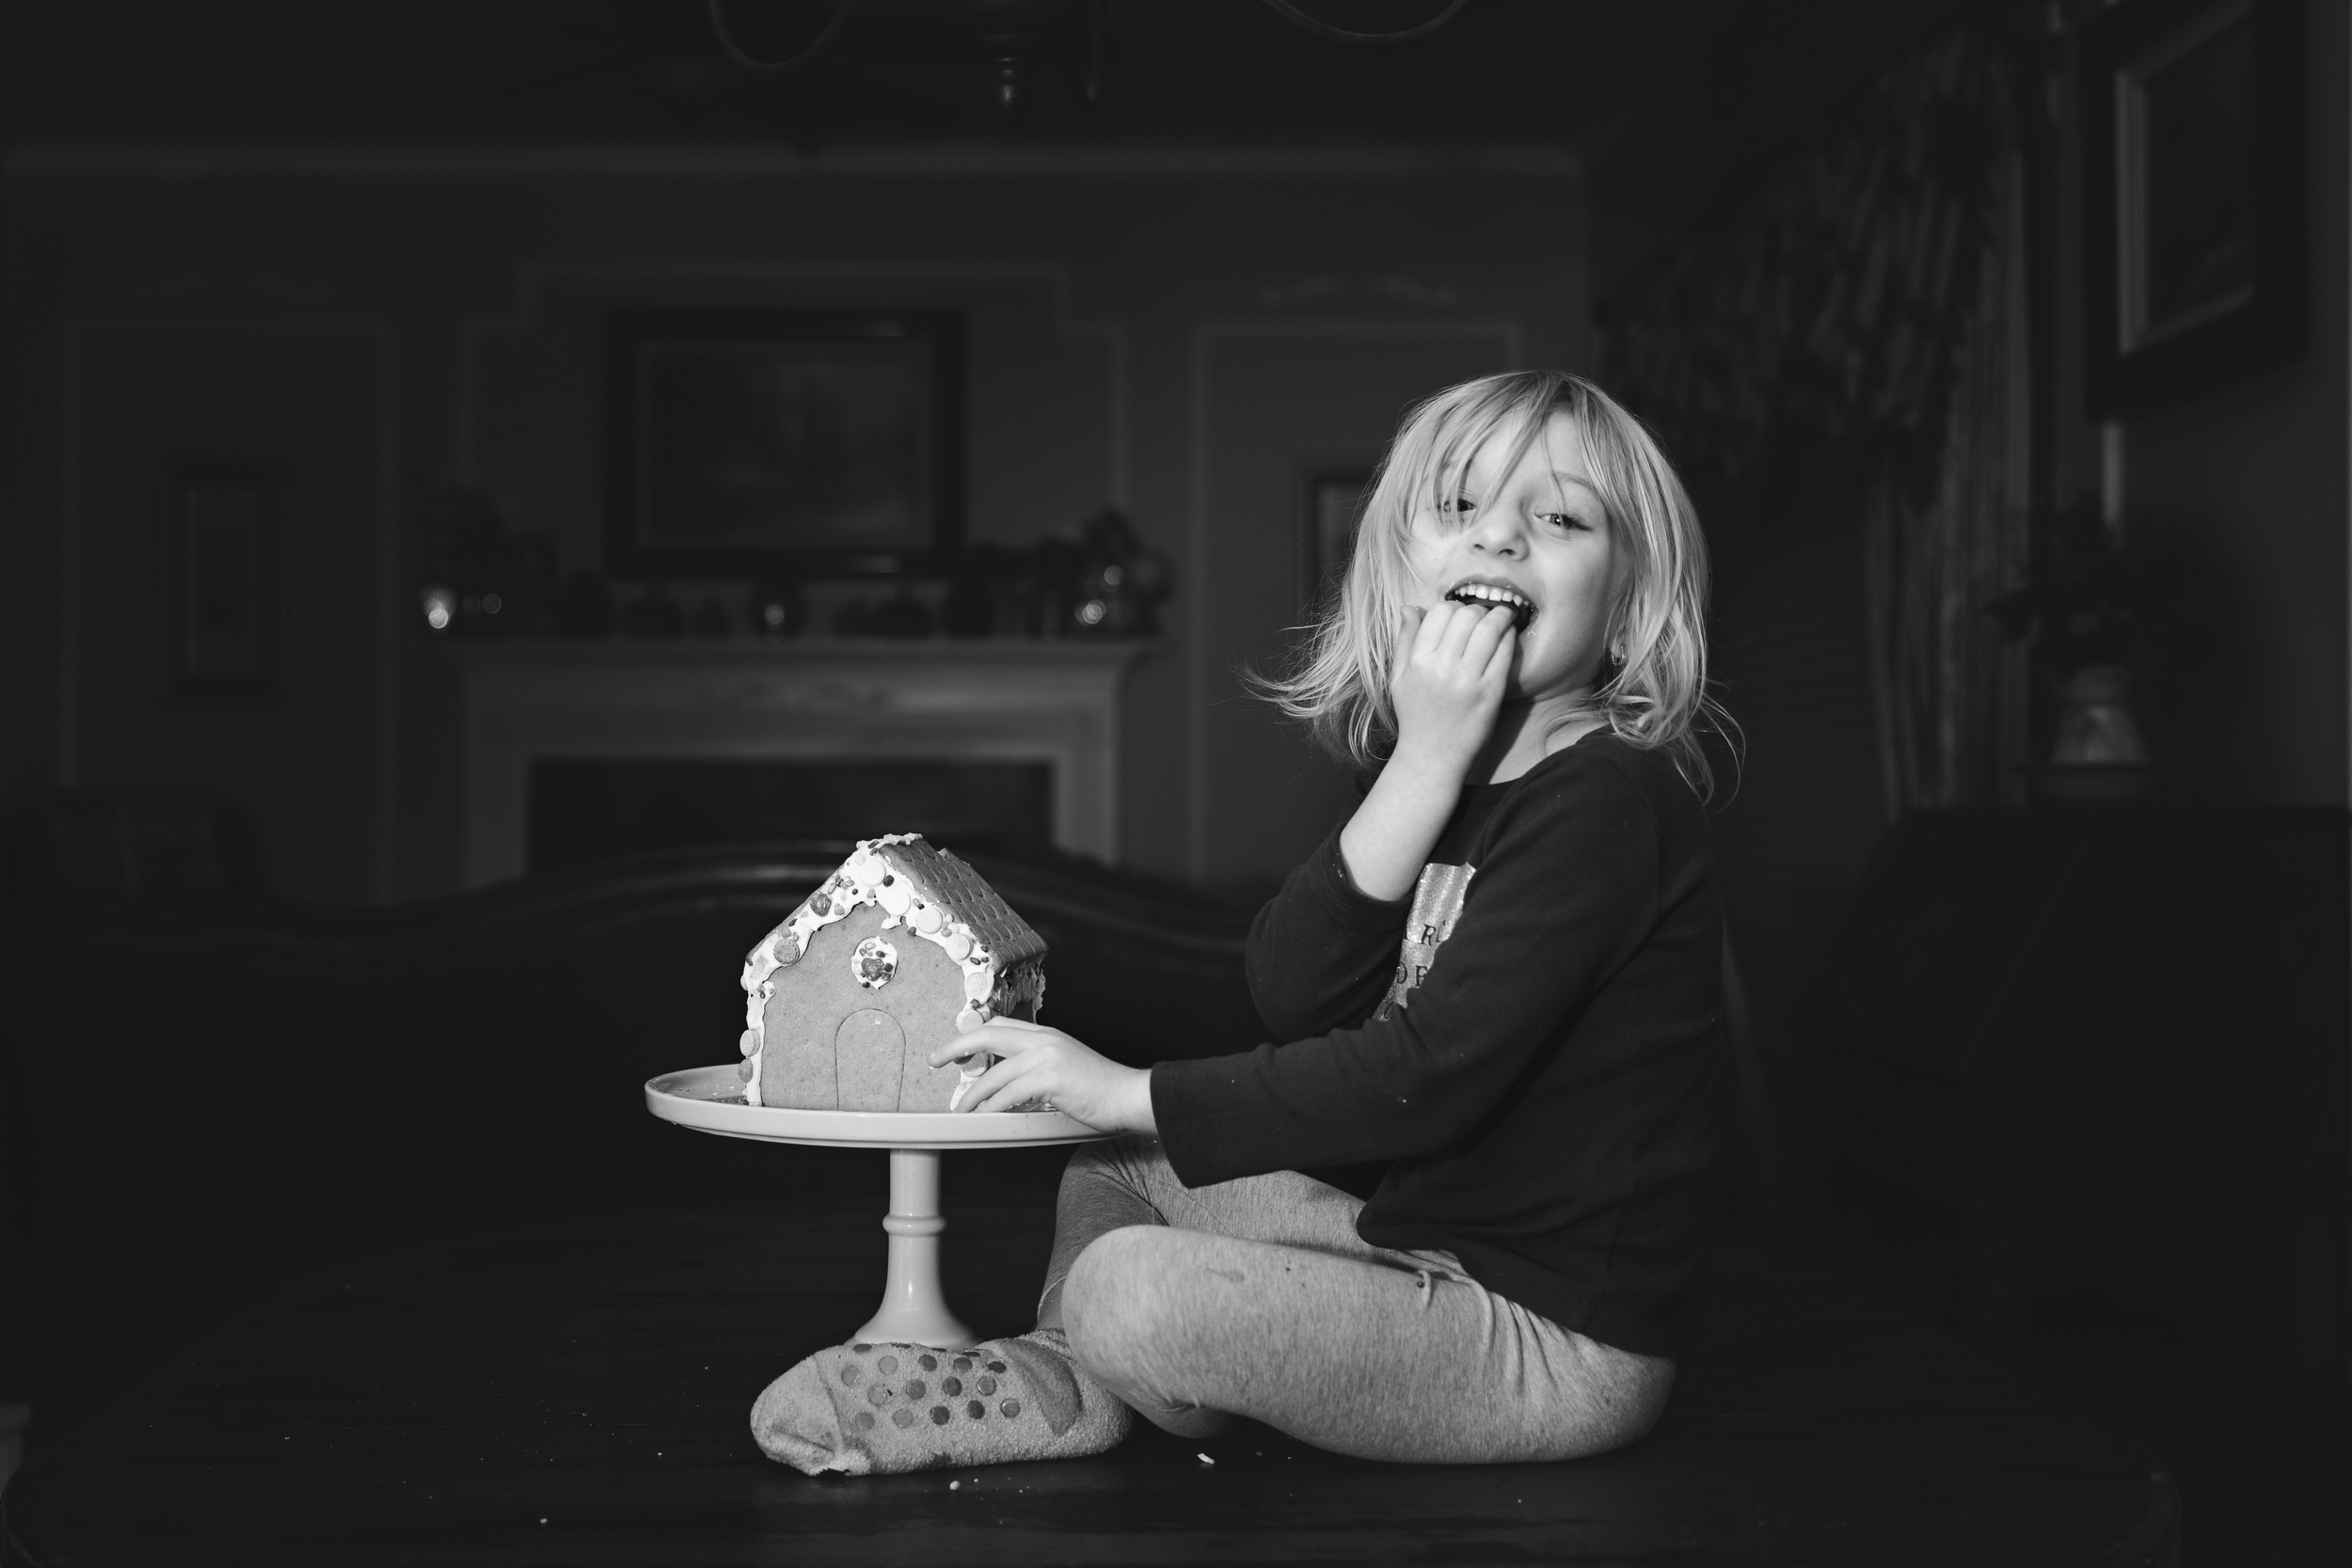 364- Busted her eating the Gingerbread house!